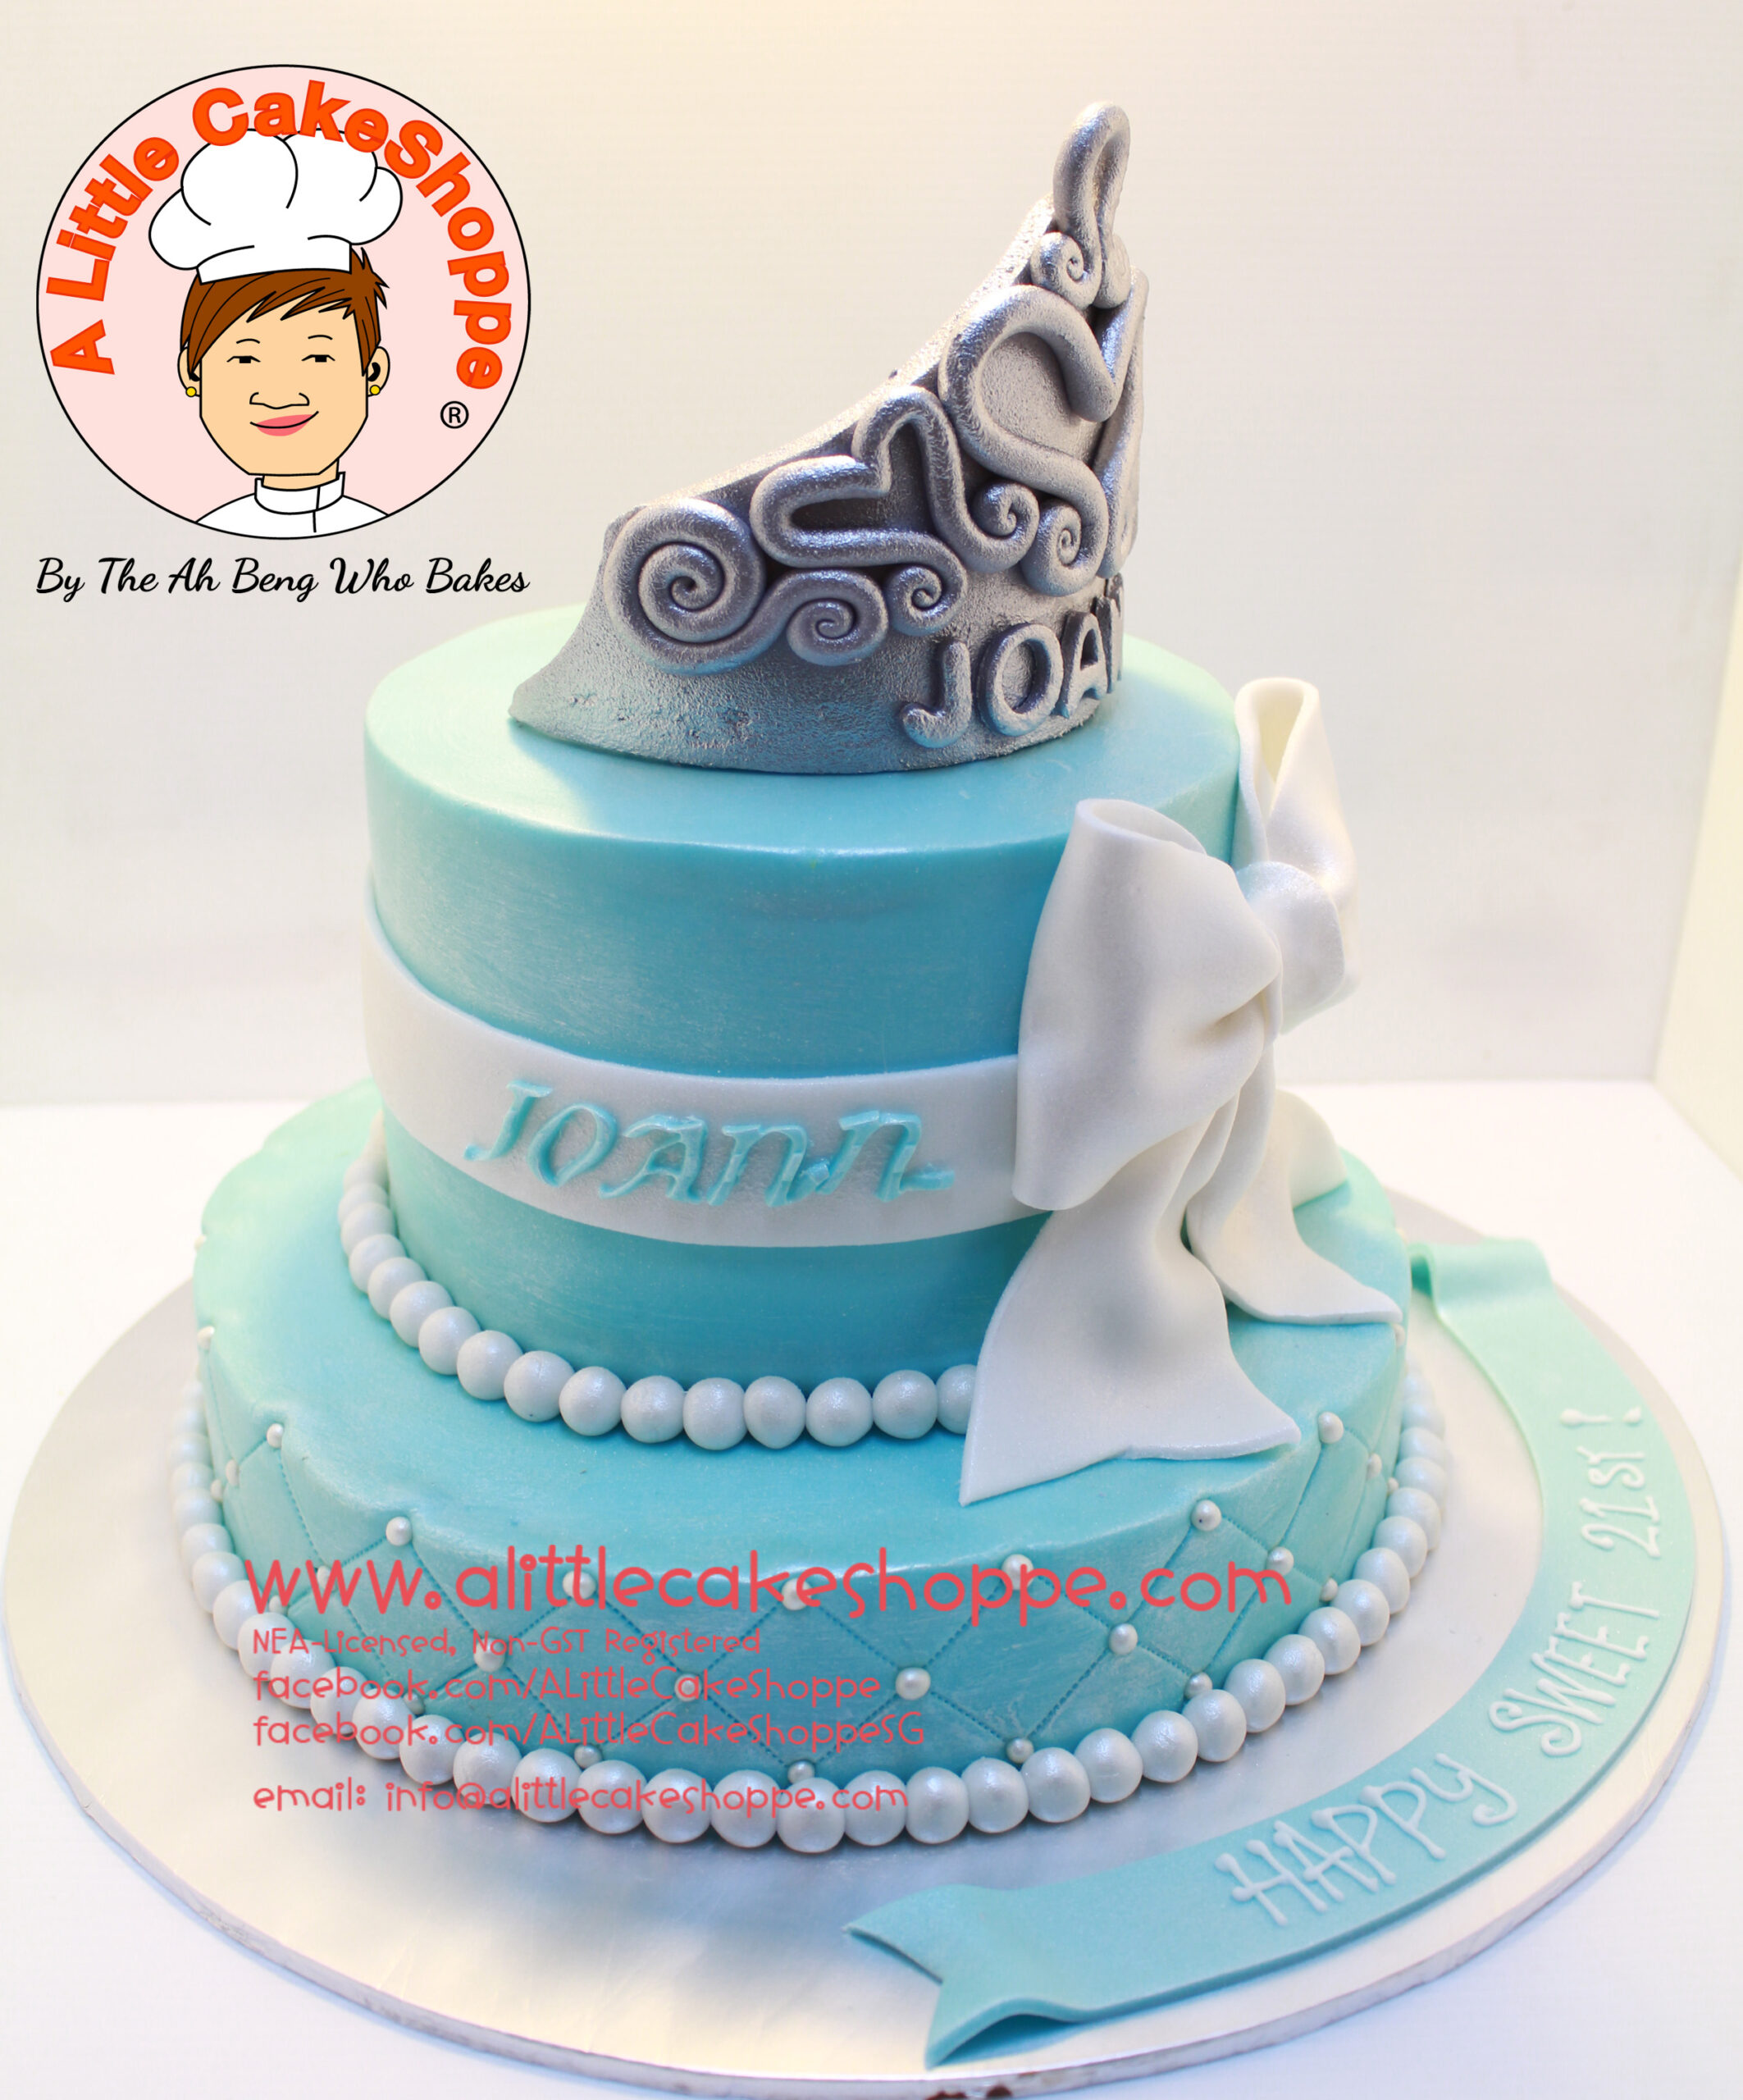 Best Customised Cake Shop Singapore custom cake 2D 3D birthday cake cupcakes desserts wedding corporate events anniversary 1st birthday 21st birthday fondant fresh cream buttercream cakes alittlecakeshoppe a little cake shoppe compliments review singapore bakers SG cake shop cakeshop ah beng who bakes princess